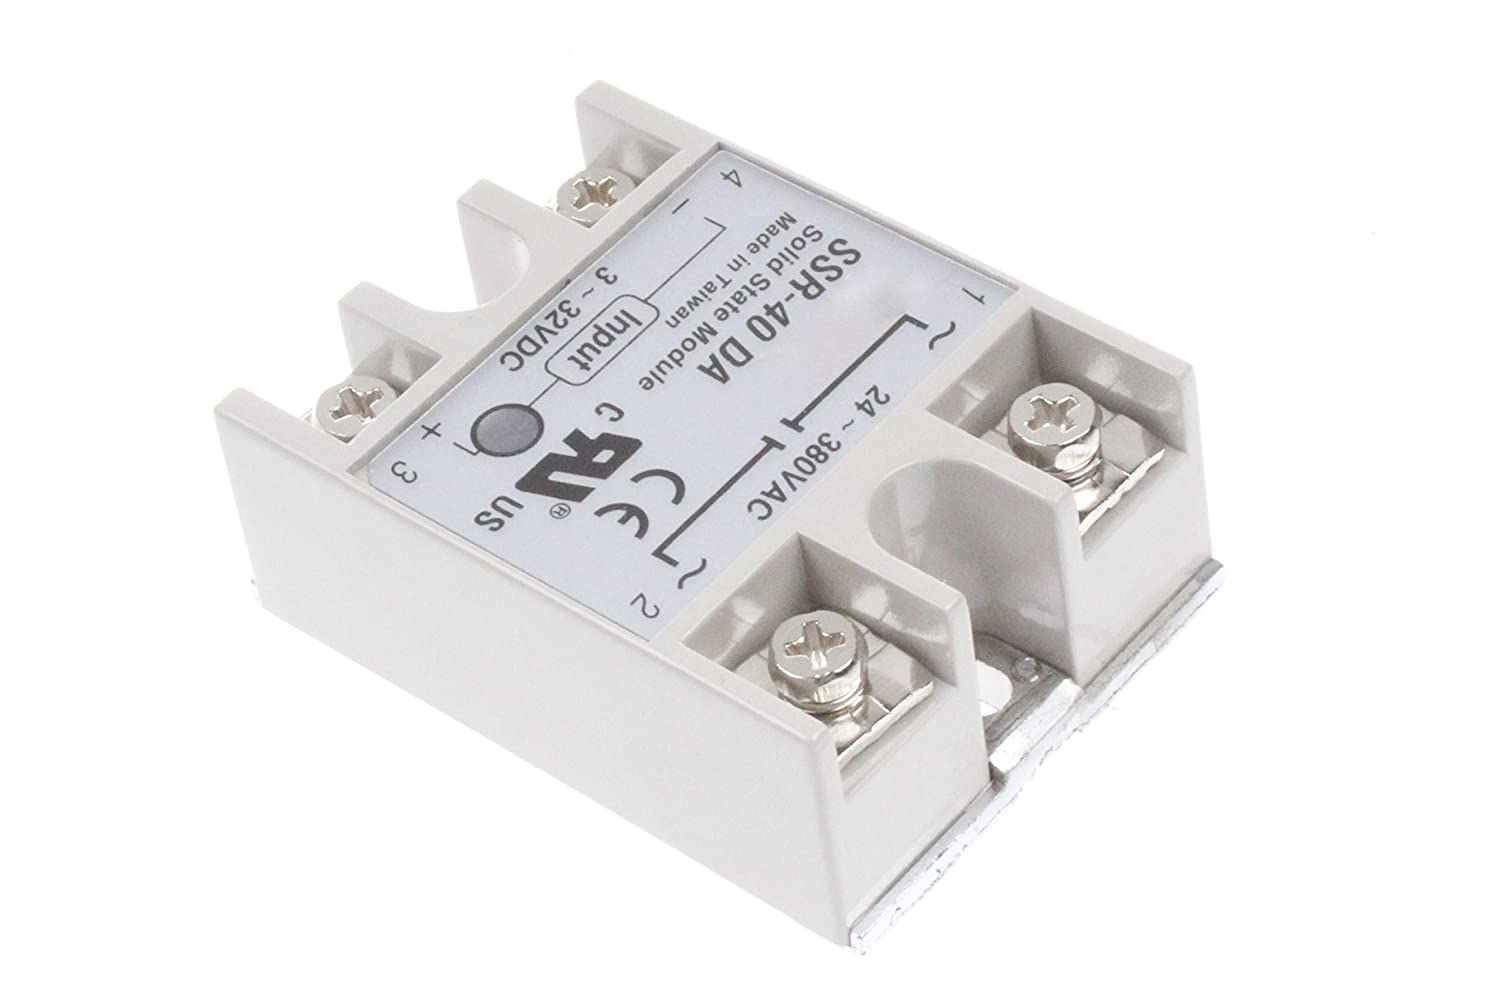 Ssr 40da Solid State Relay Single Phase Semi Conductor Dcsolidstaterelays Relaycontrol Controlcircuit Circuit Dc Control Ac Input 3 32v Output 24 380v Home Improvement